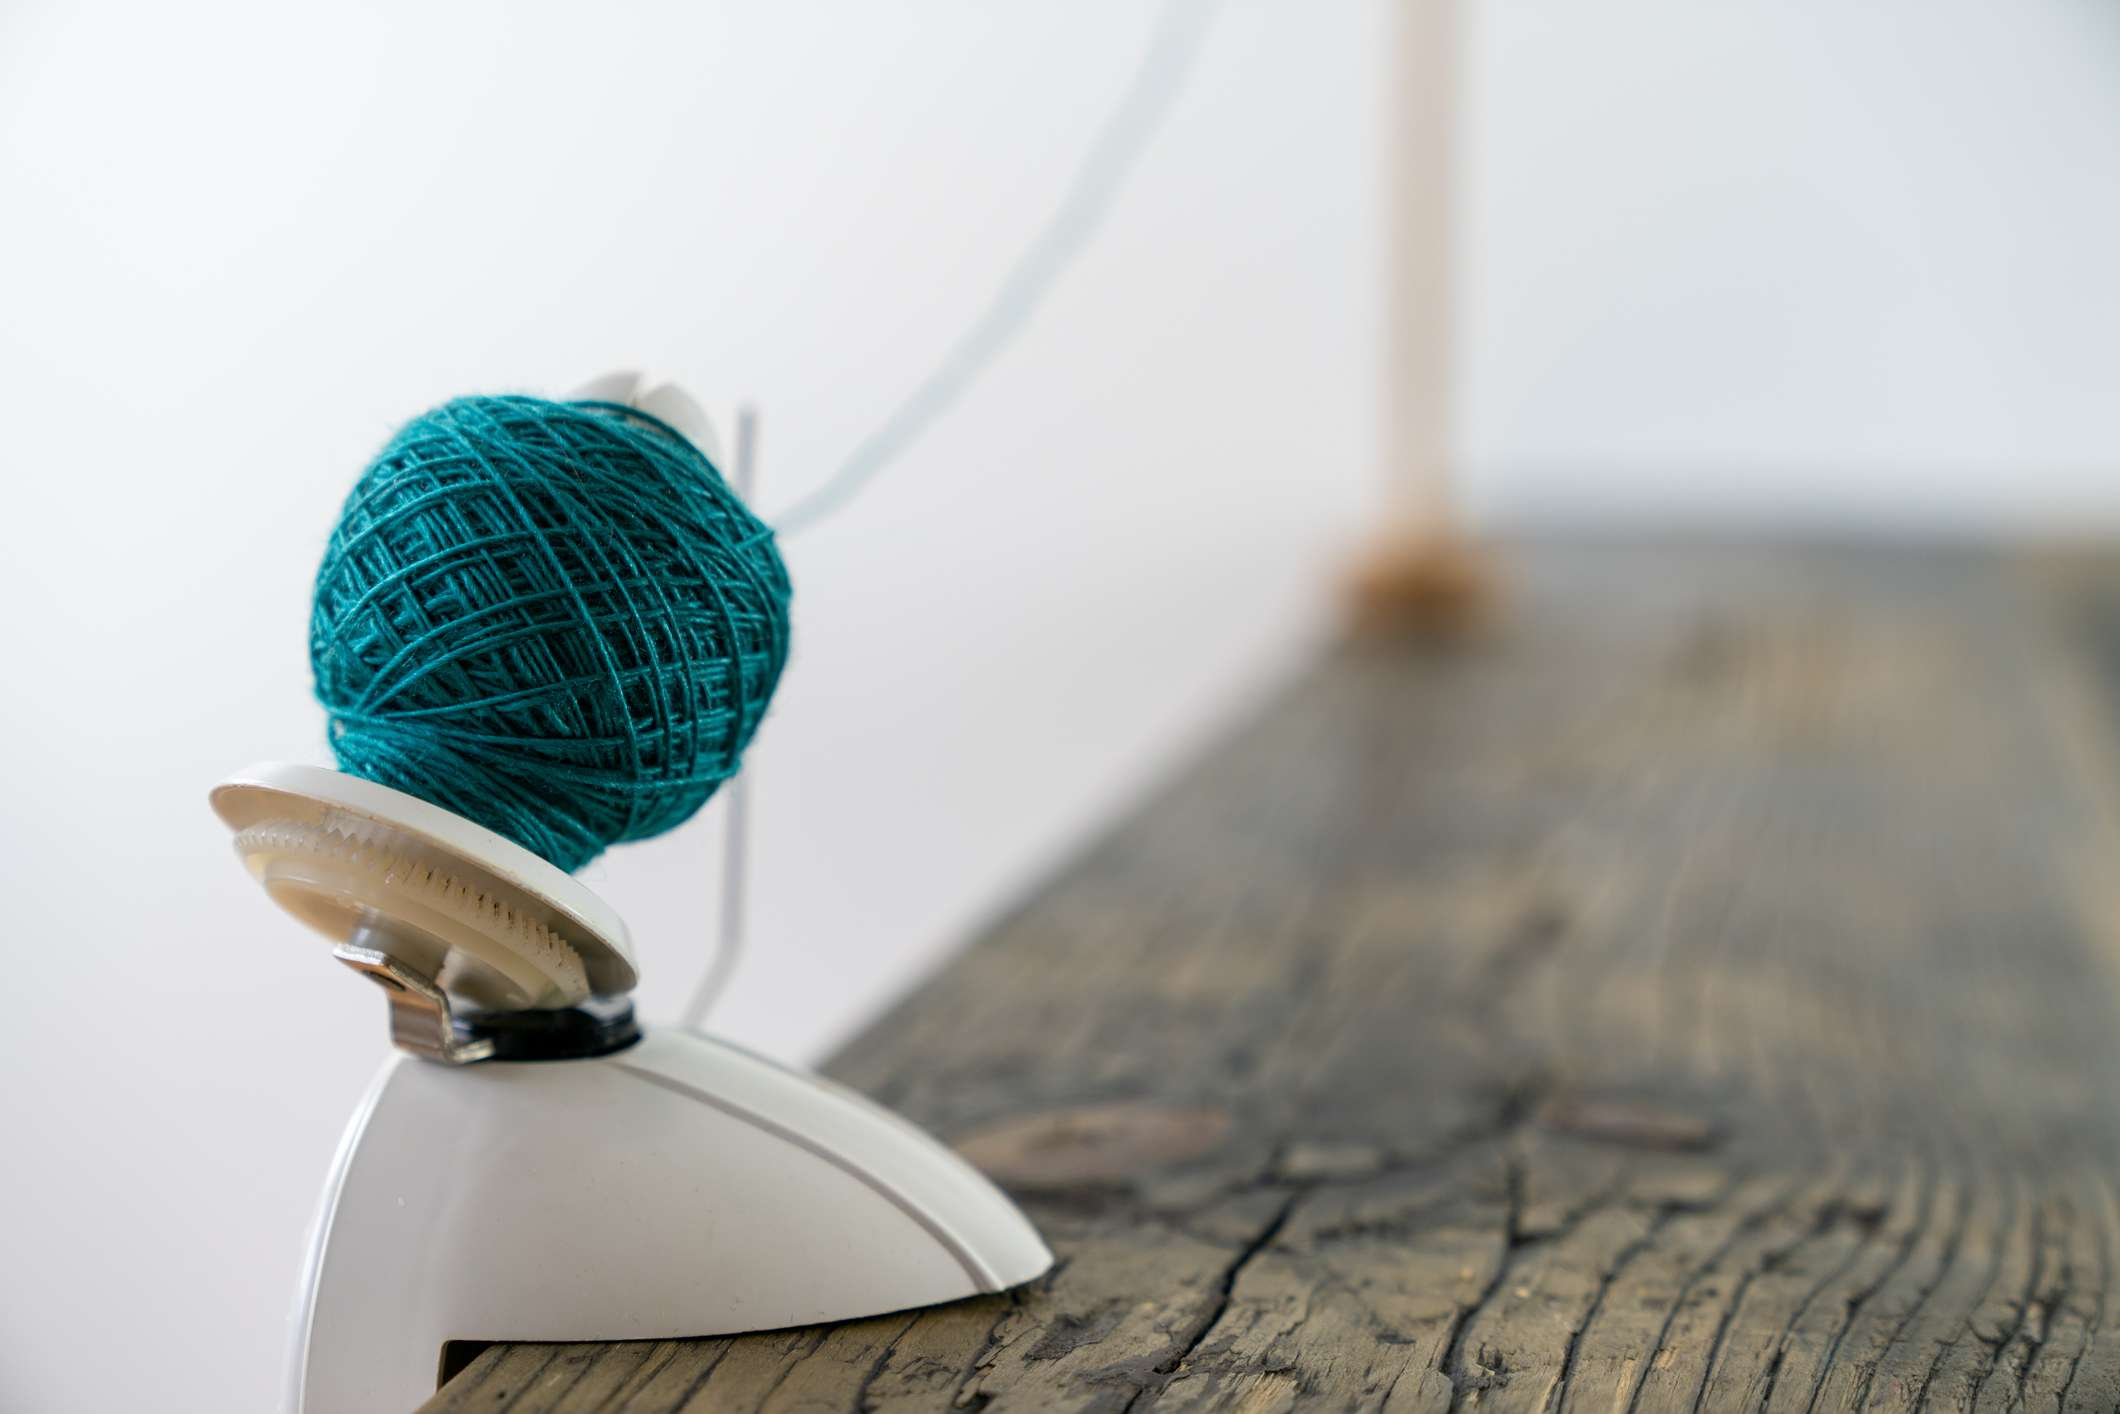 close up view of a hand-operated knitting roll or wool thread ball winder and knitting umbrellla